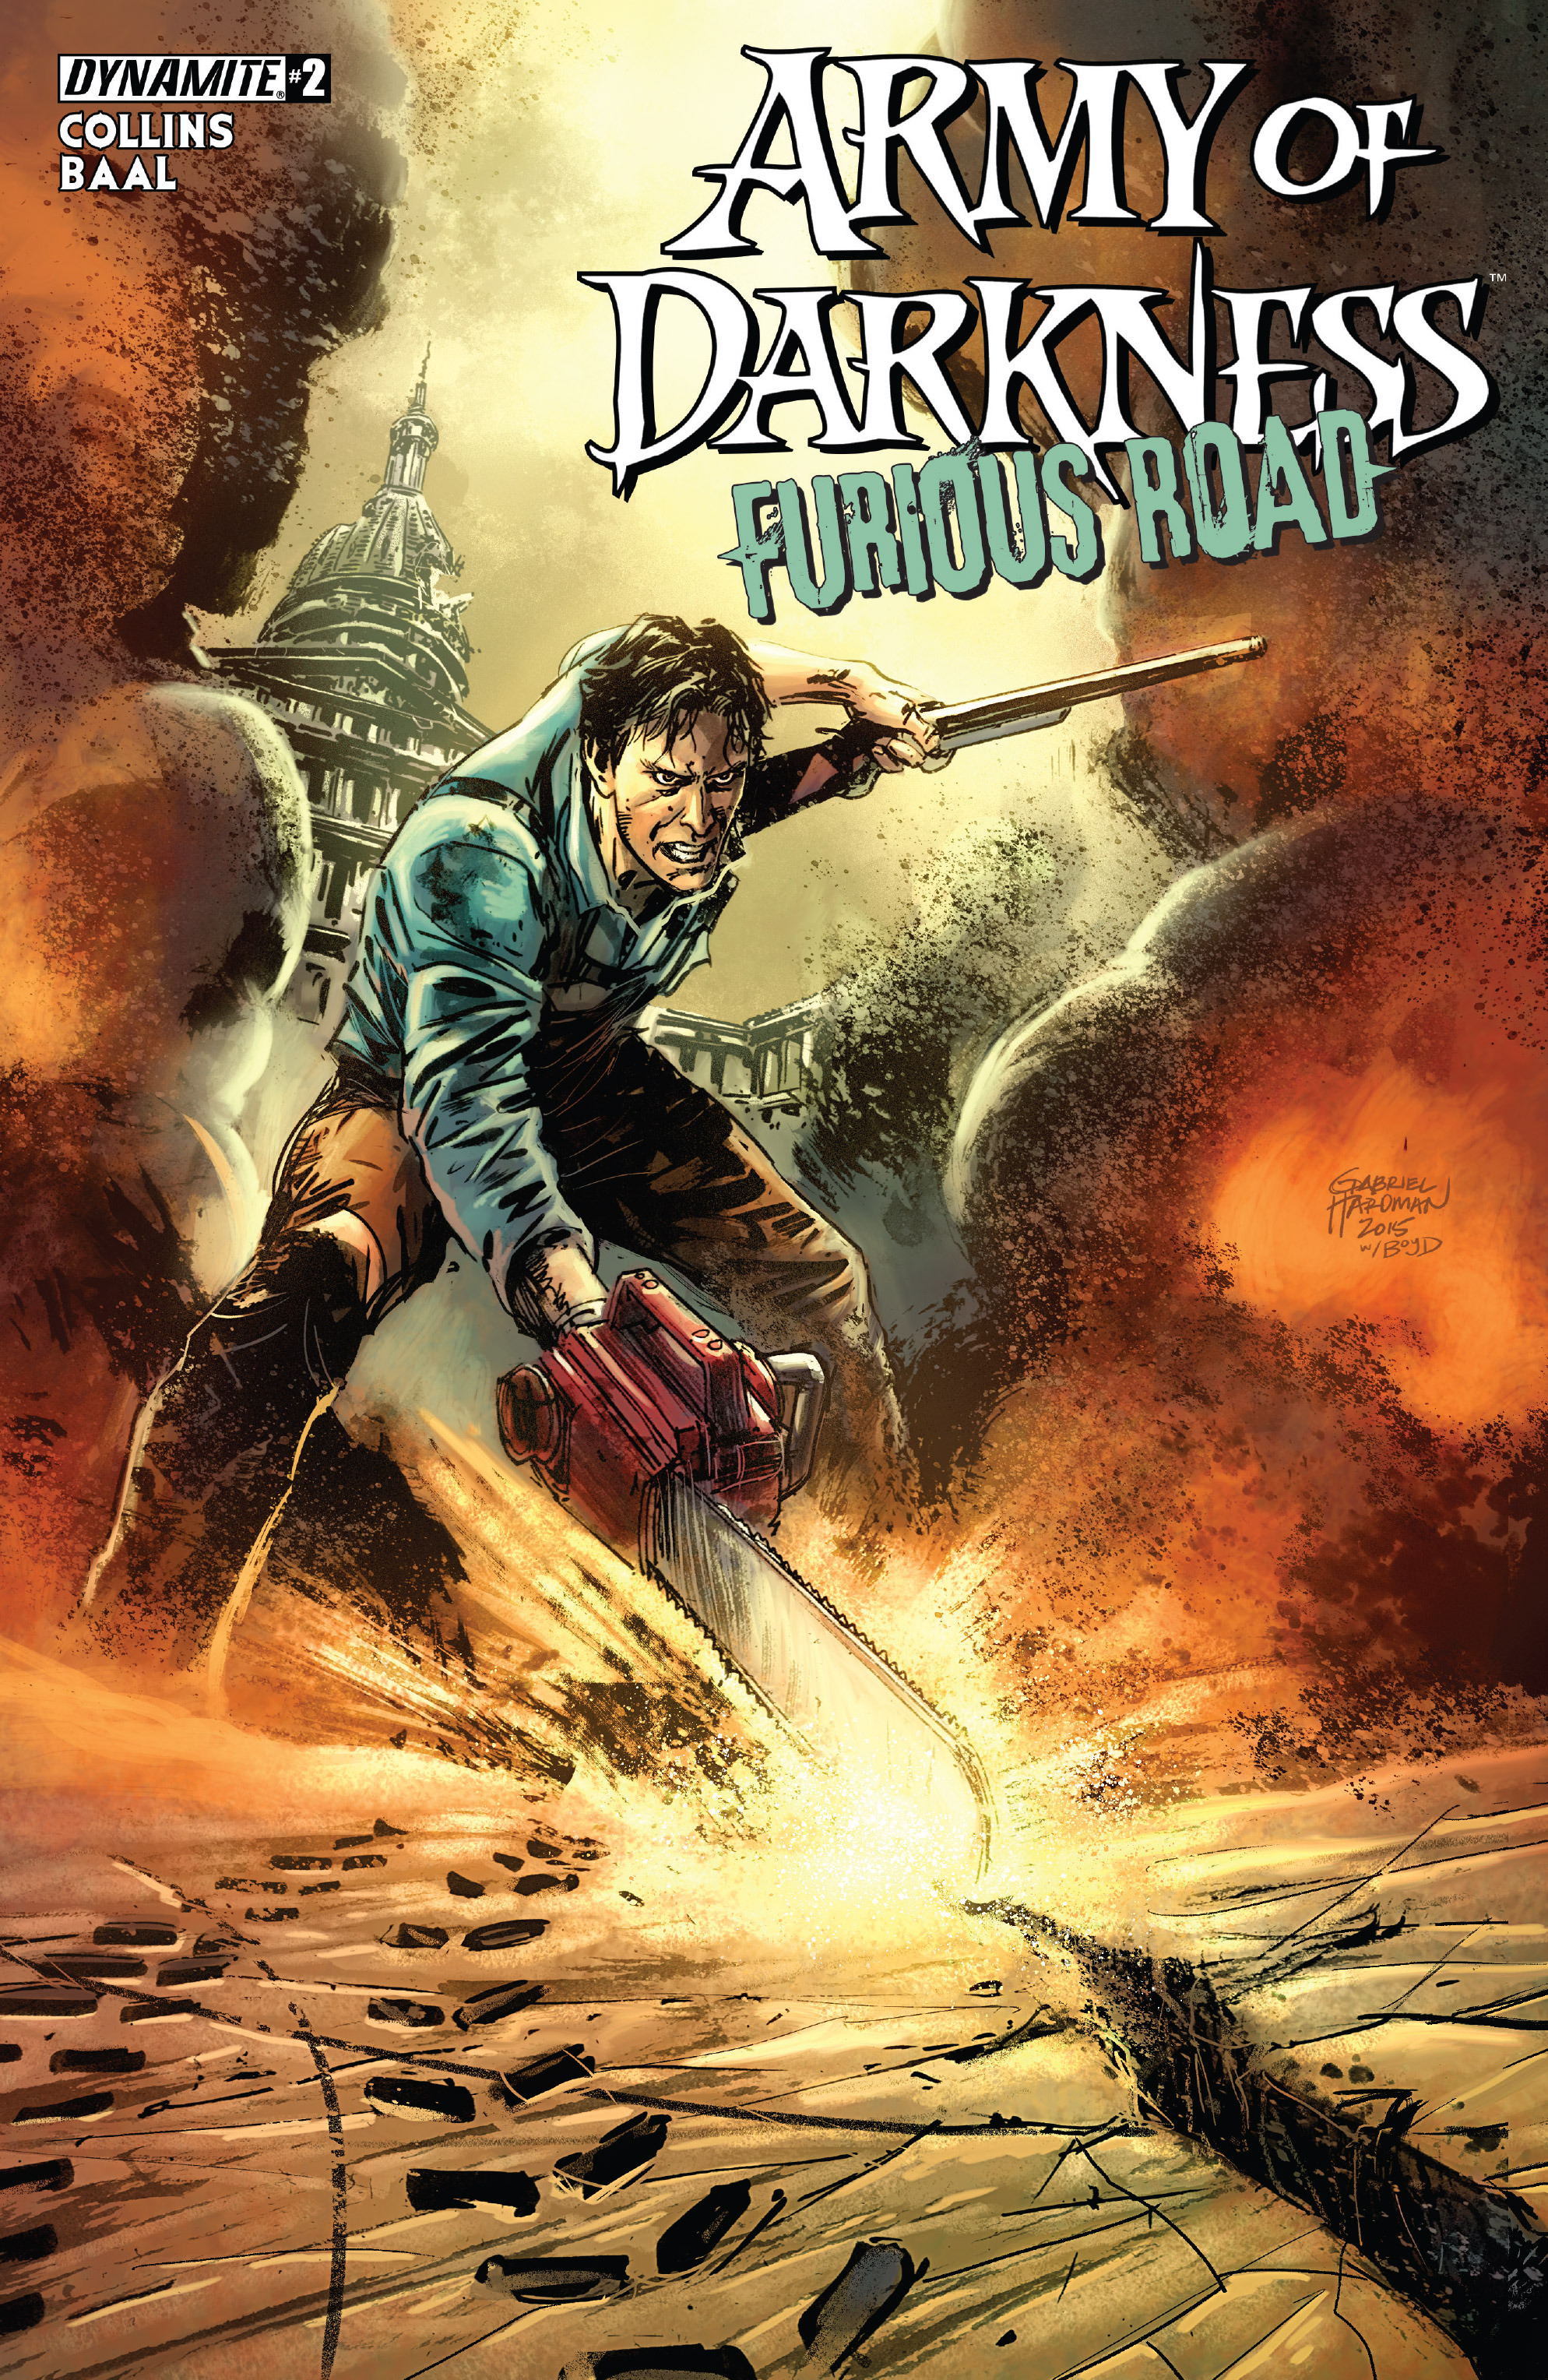 Read online Army of Darkness: Furious Road comic -  Issue #2 - 1